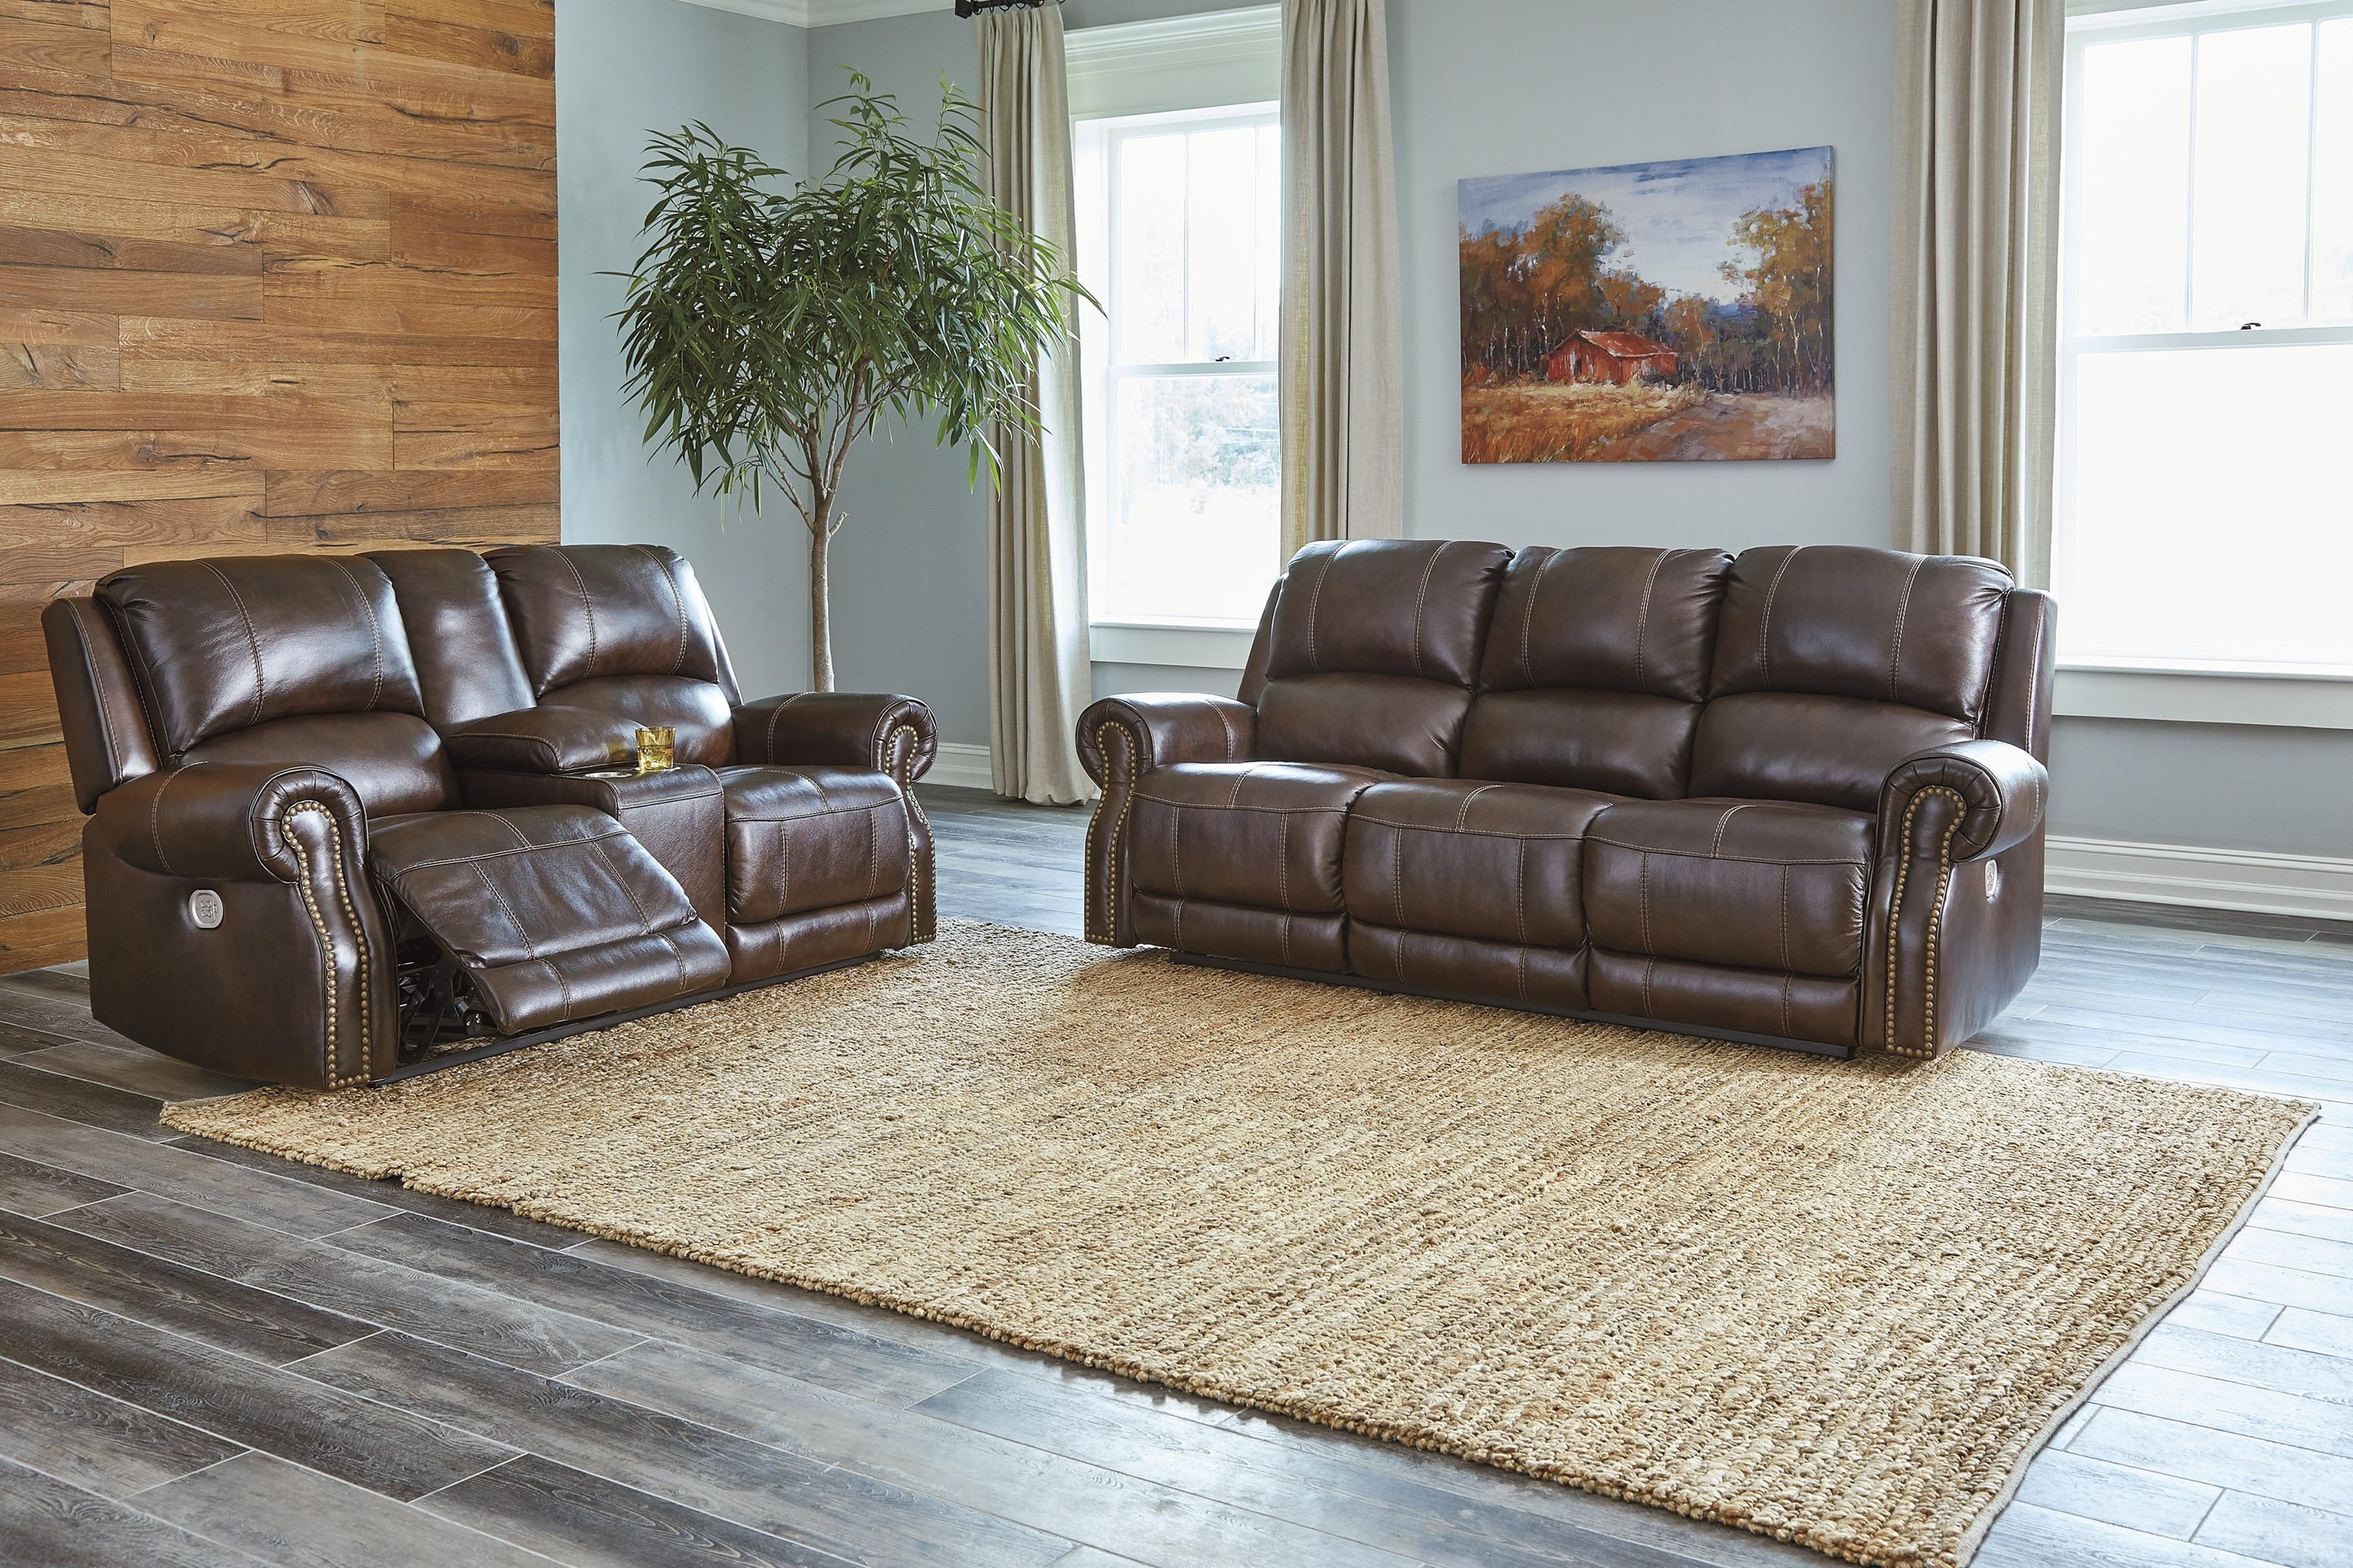 Power Recliner Sofa and Power Recliner Loves